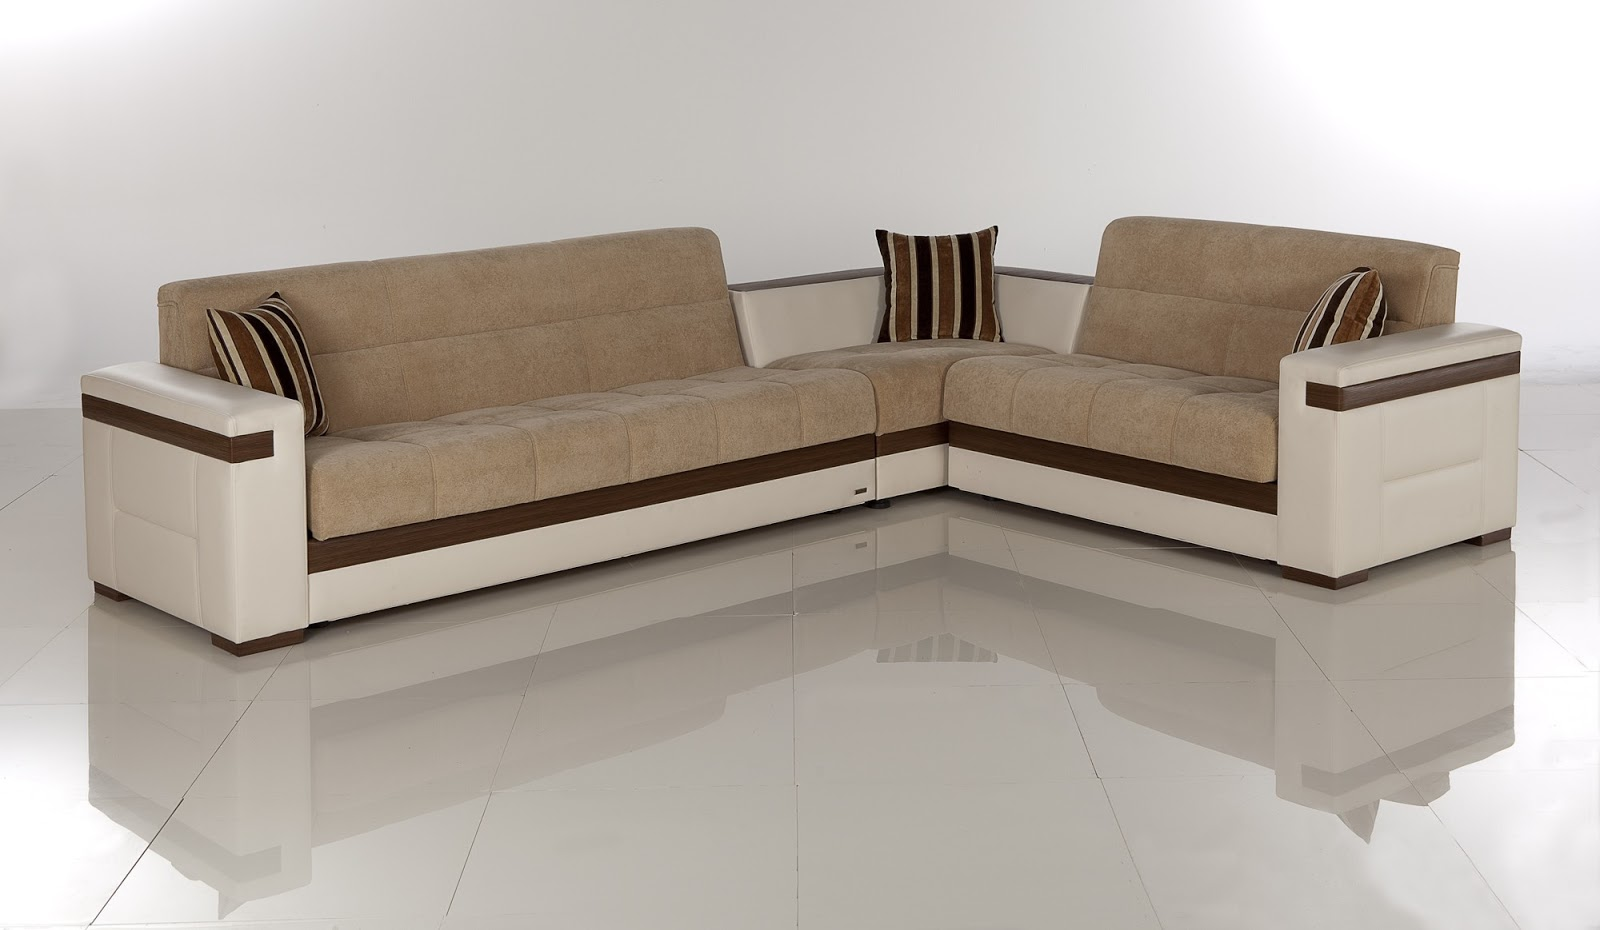 Sofa Designs Ideas - Home and Design